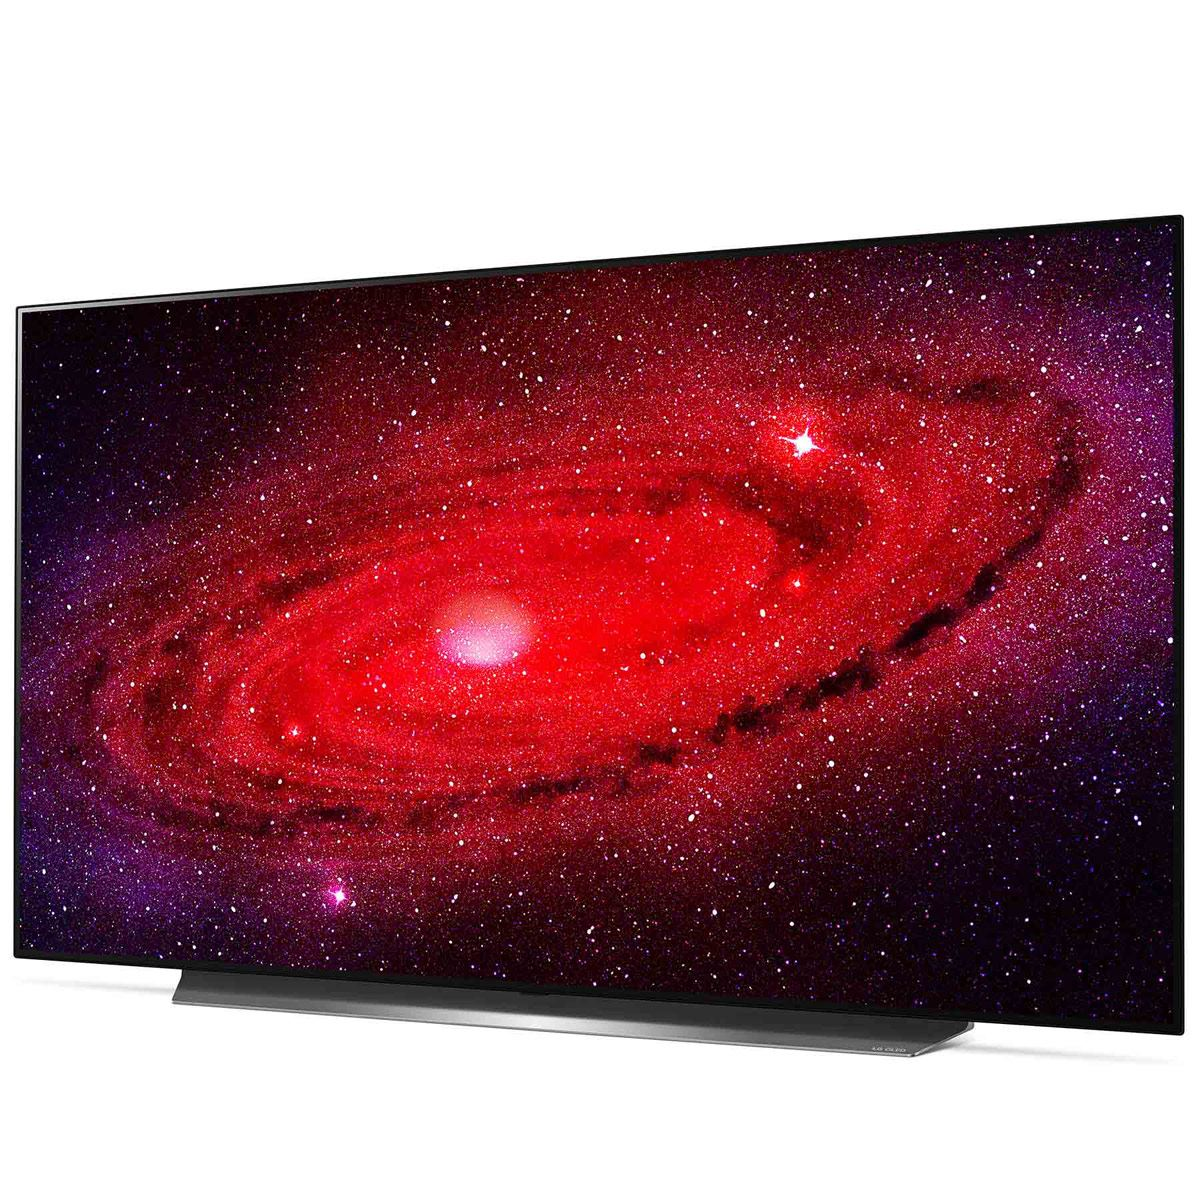 Pantalla LG OLED TV AI ThinQ 4K 55